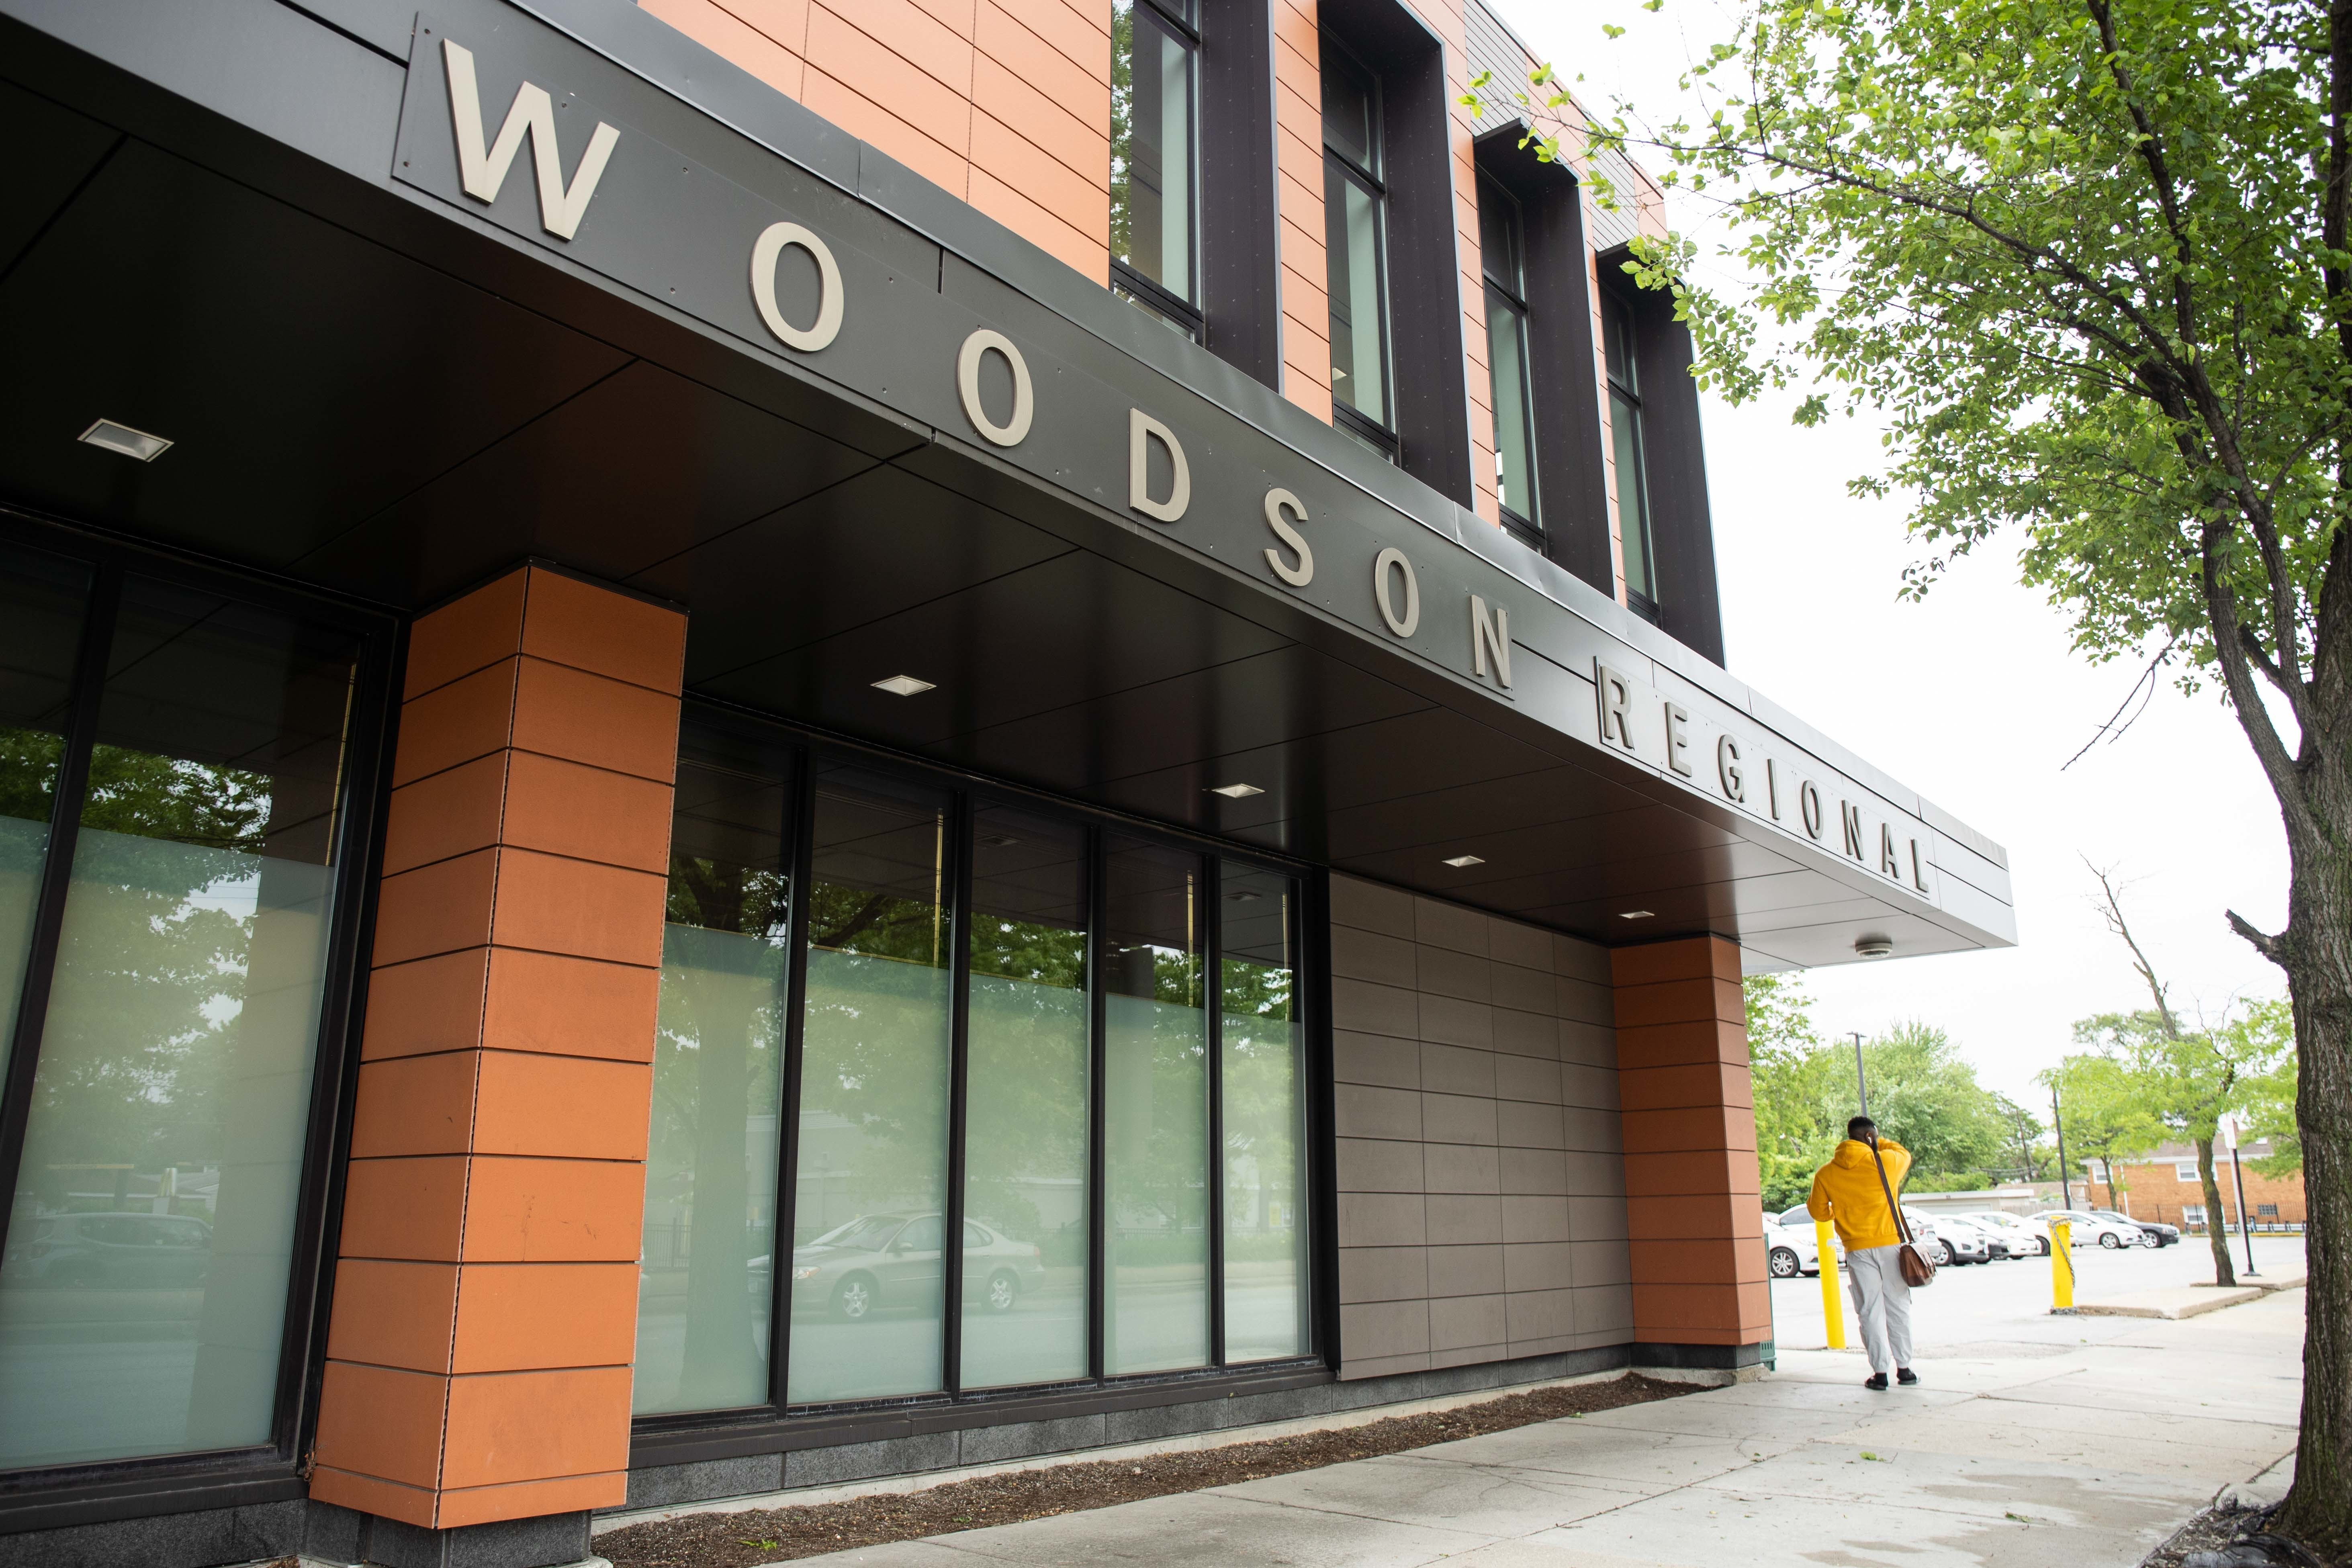 The city opened an enlarged Carter G. Woodson Regional Library at 95th and Halsted streets in 2018.